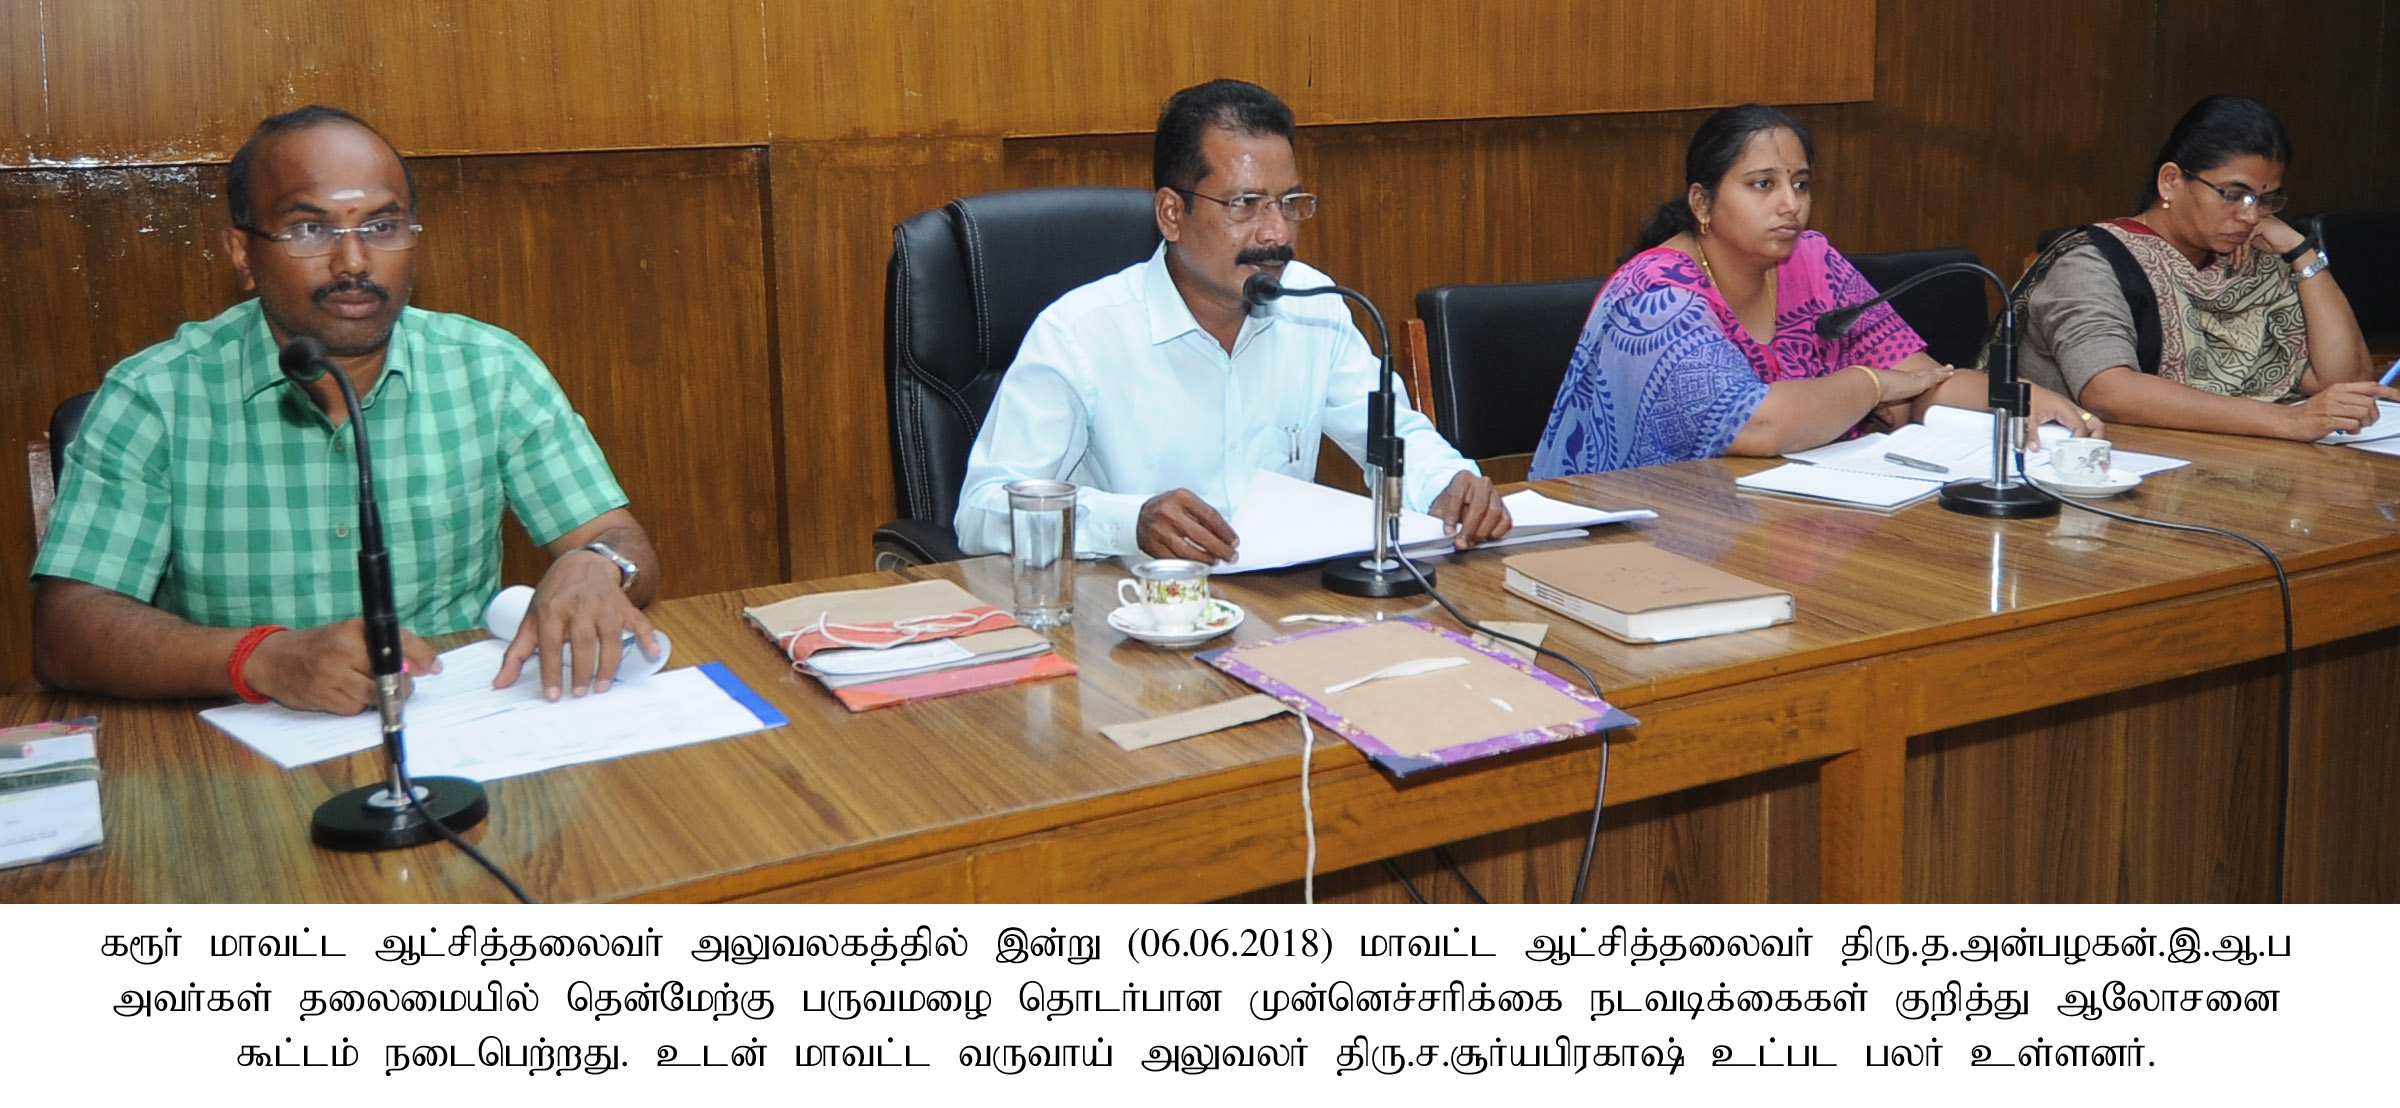 Precautionary meeting for Southwest Monsoon.